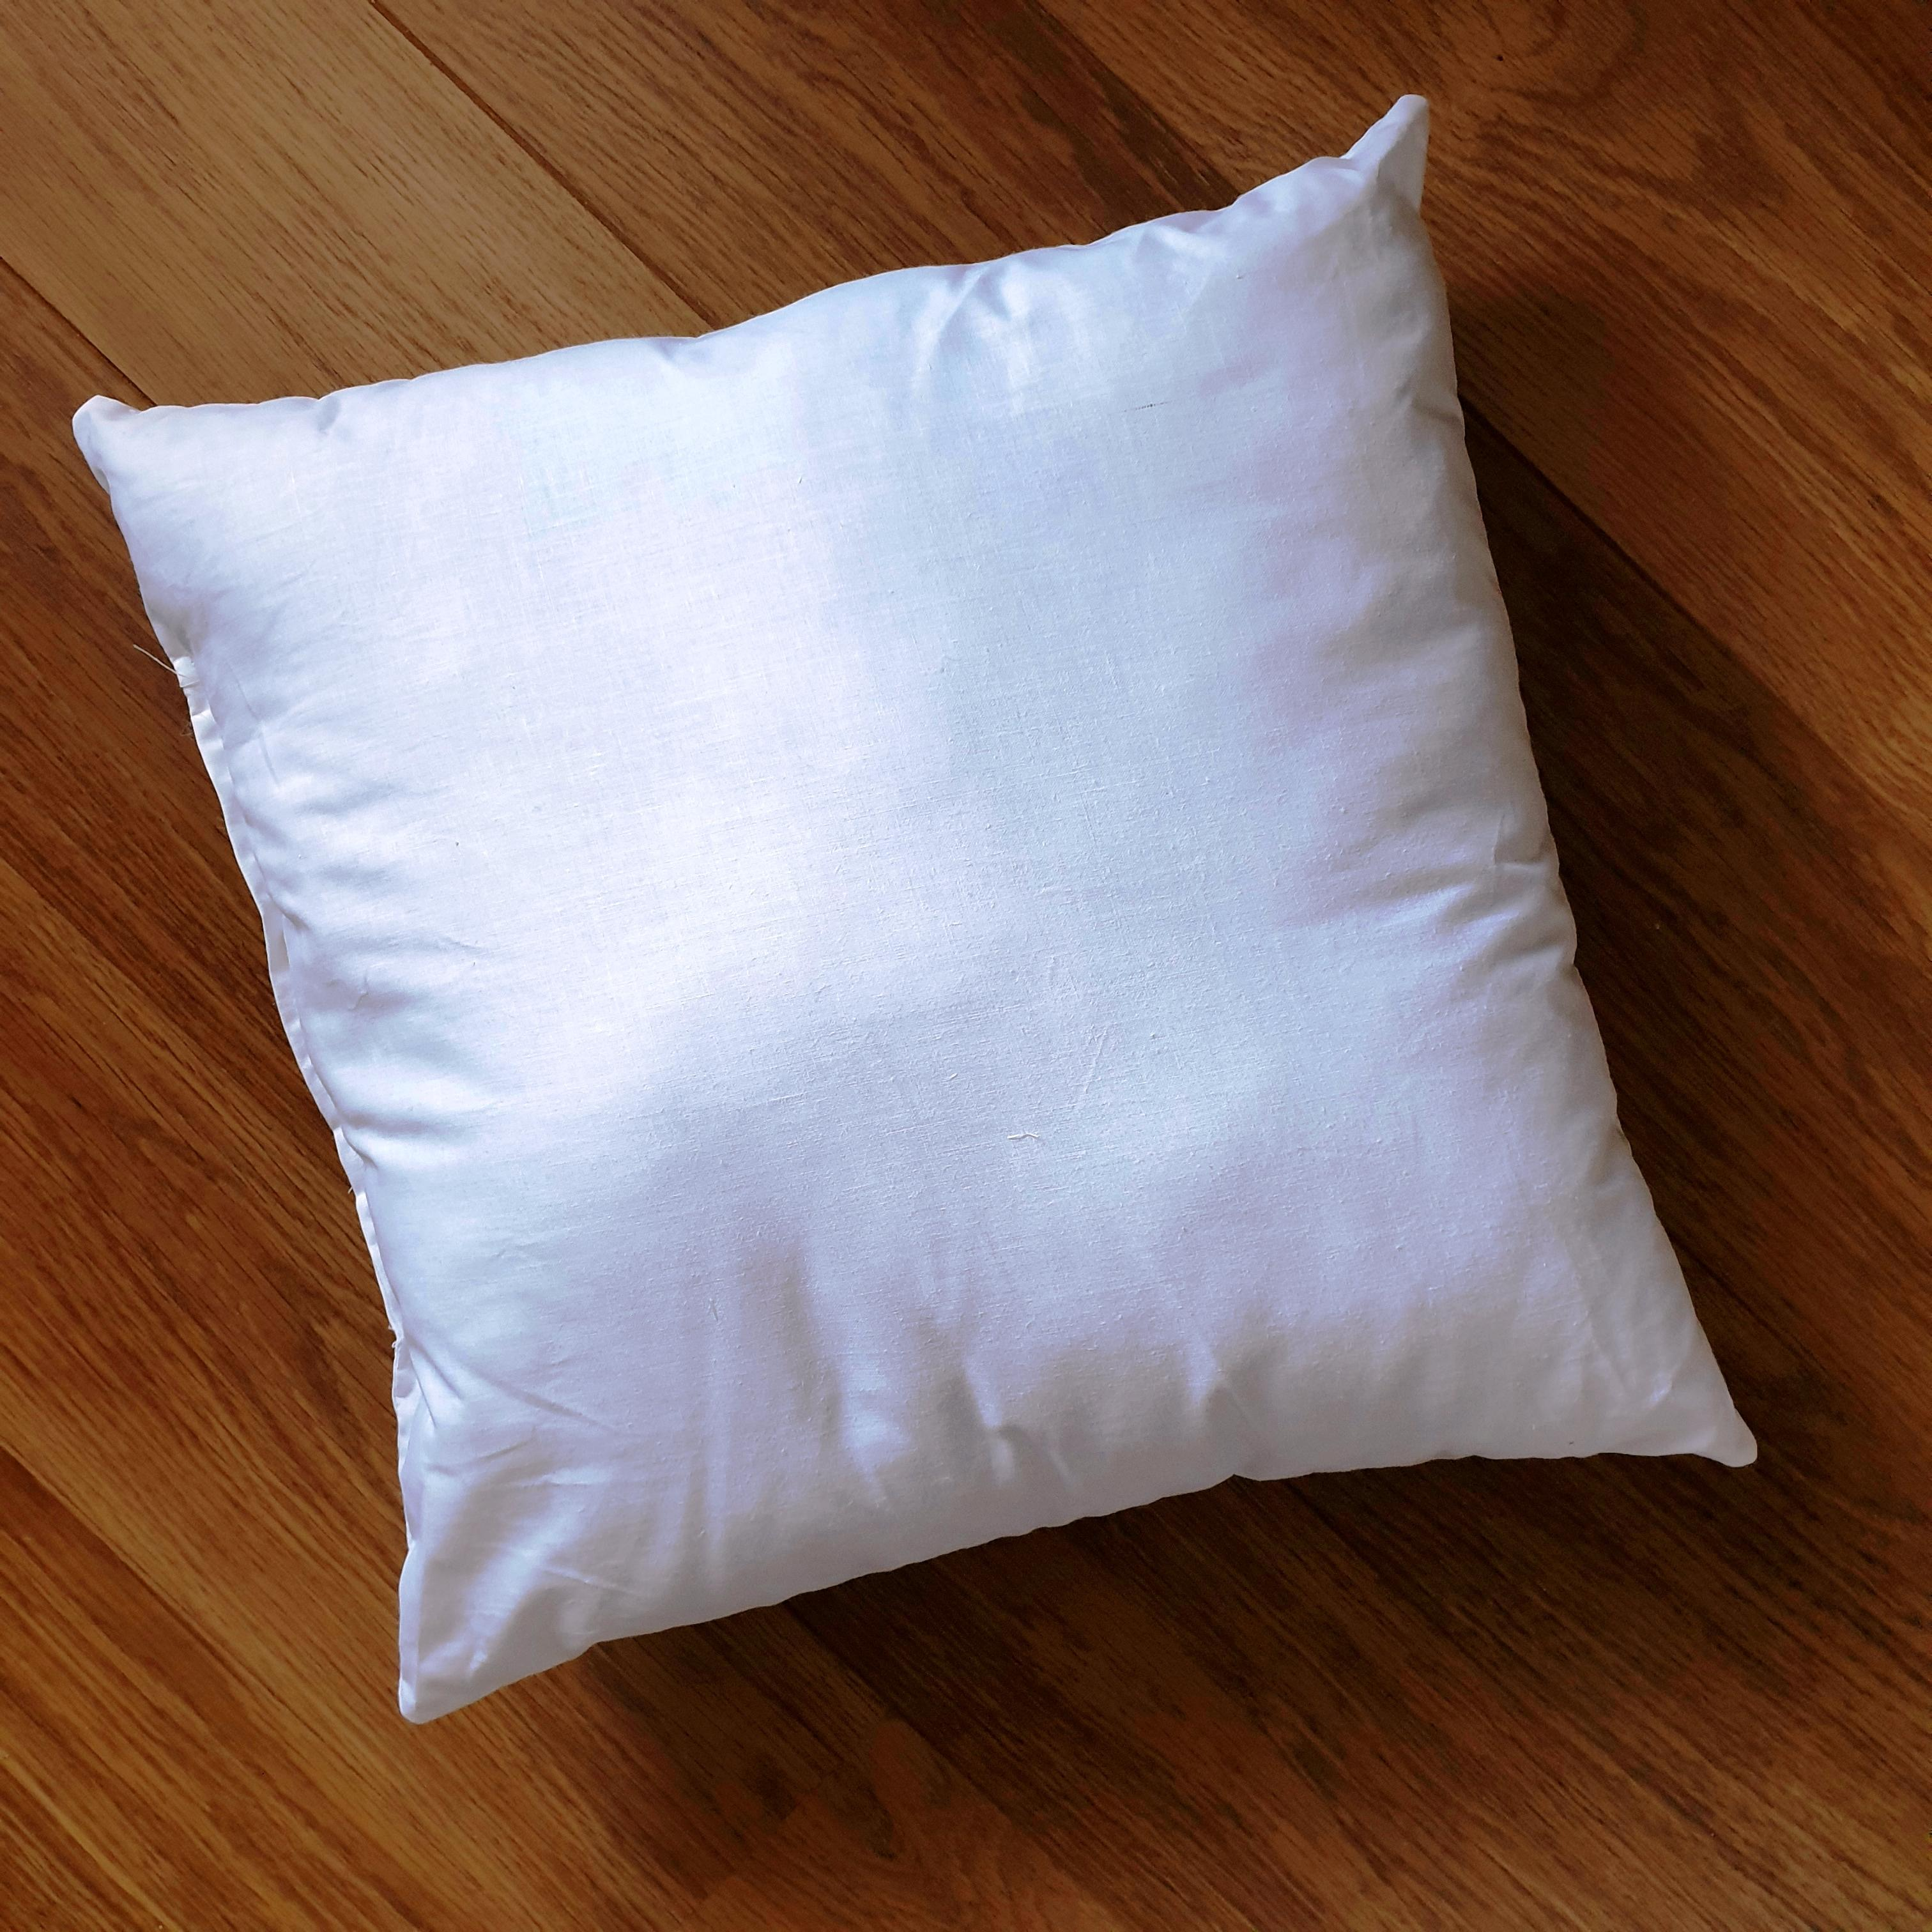 45cm cushion inner pad generously filled with Eco-Hollowfibre made from recycled plastic bottles in white poly cotton outer cover.